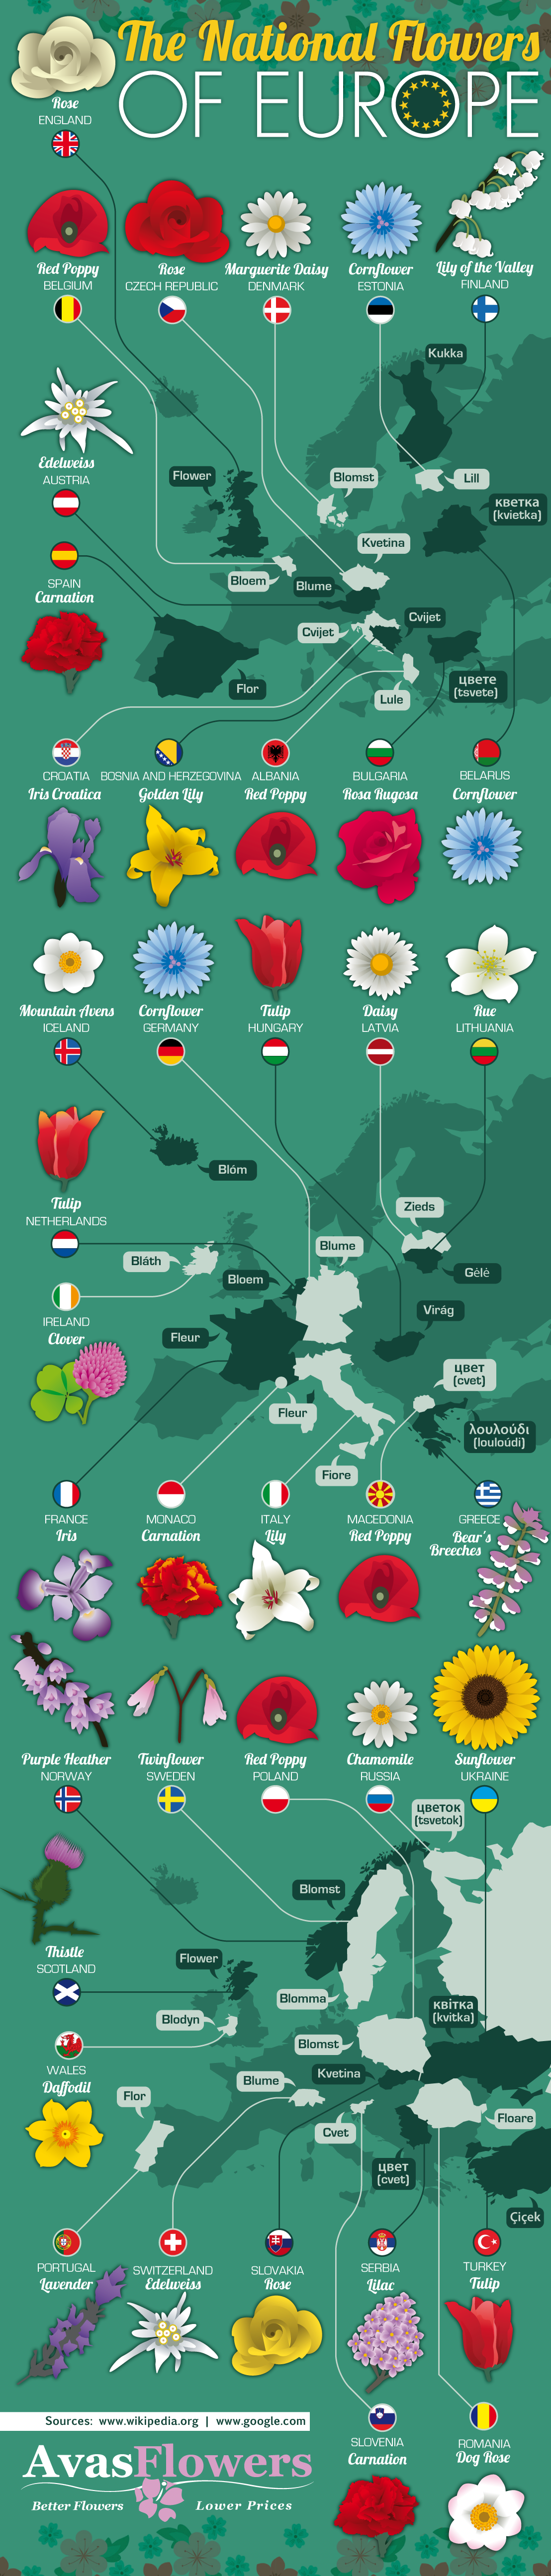 The National Flowers of Europe - Avasflowers.net - Infographic